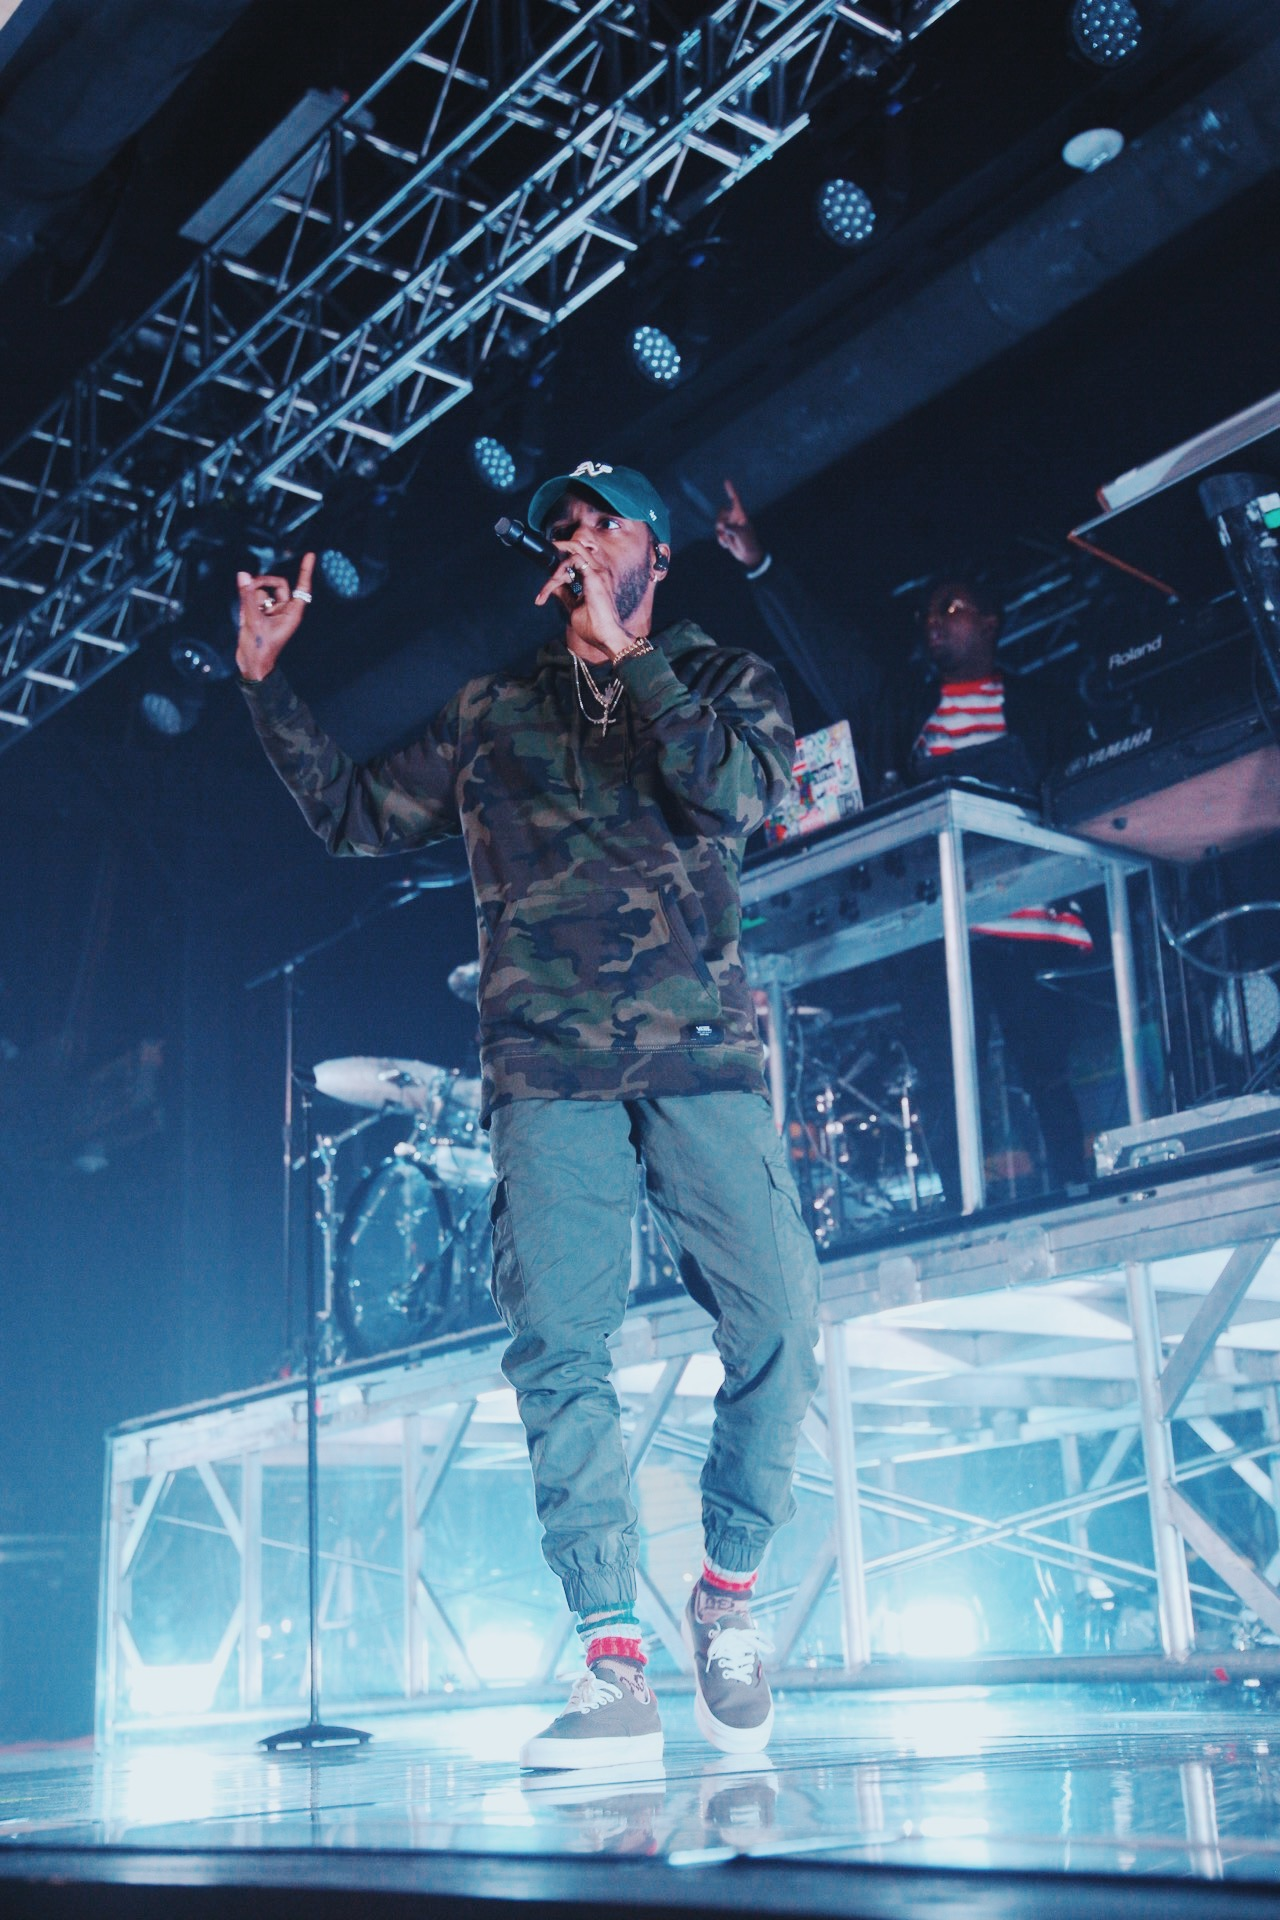 6lack in Phoenix, Arizona in December 2018 - 2.jpg